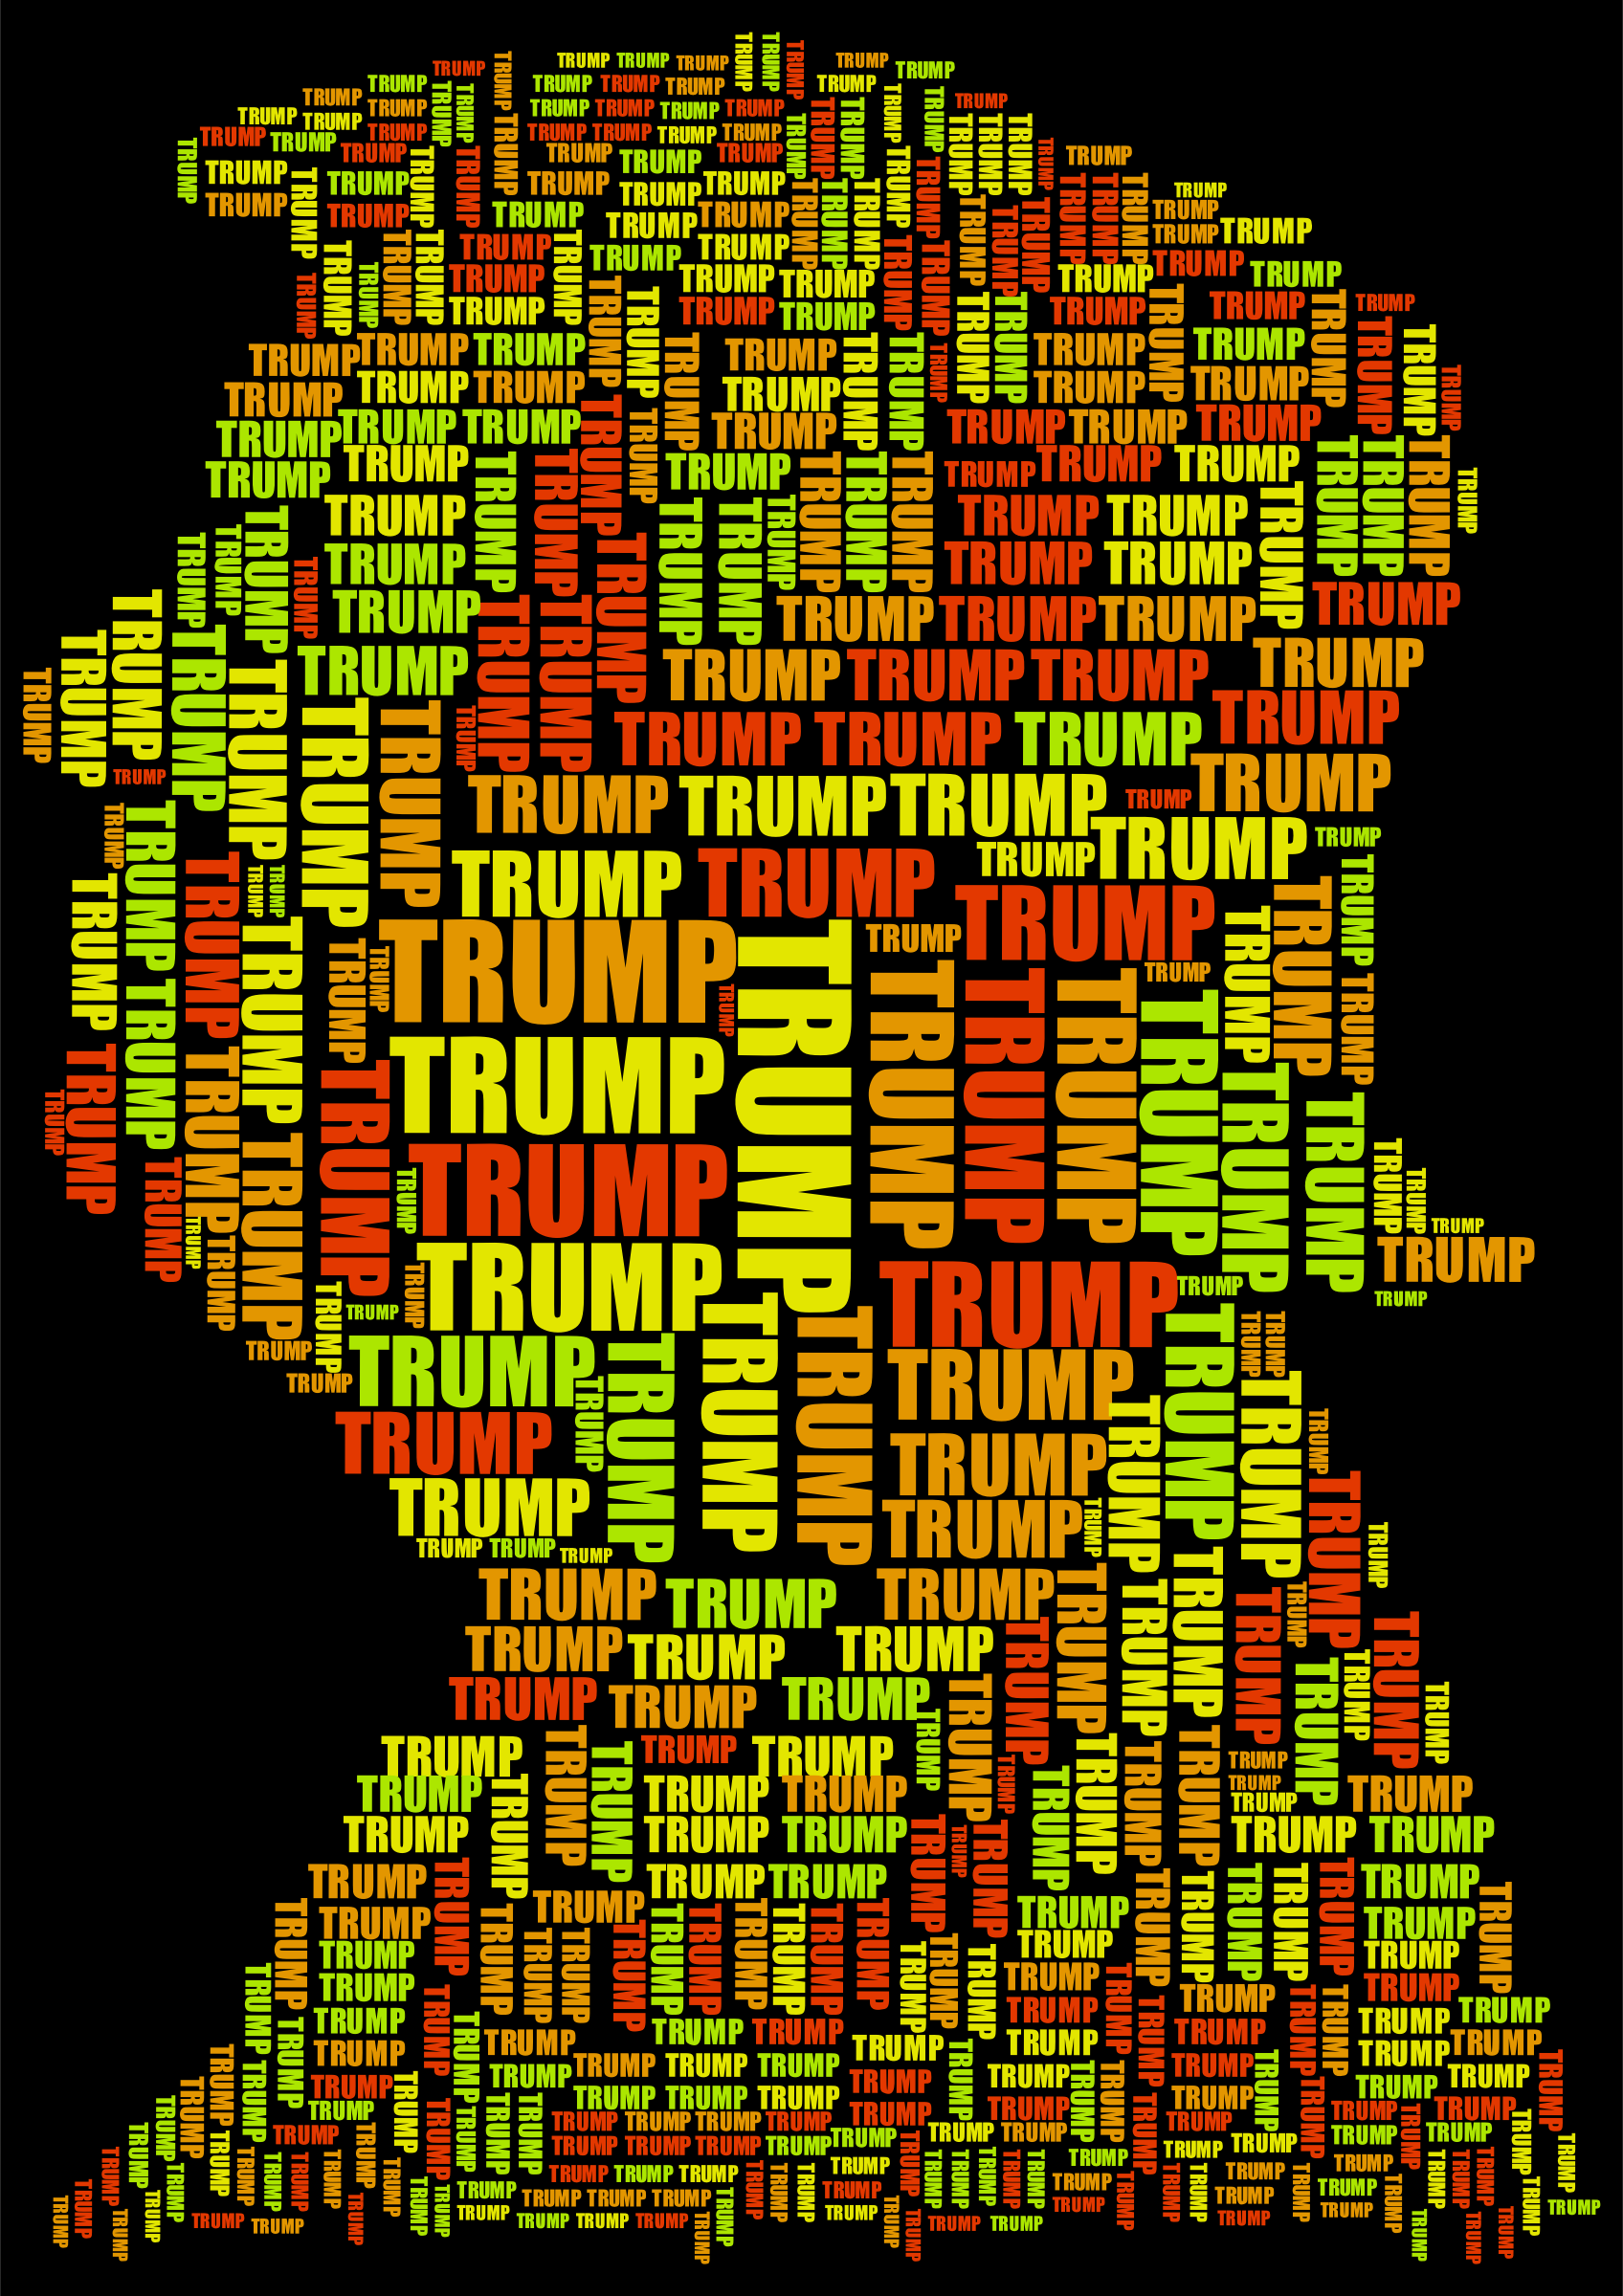 Trump Profile Word Cloud by GDJ